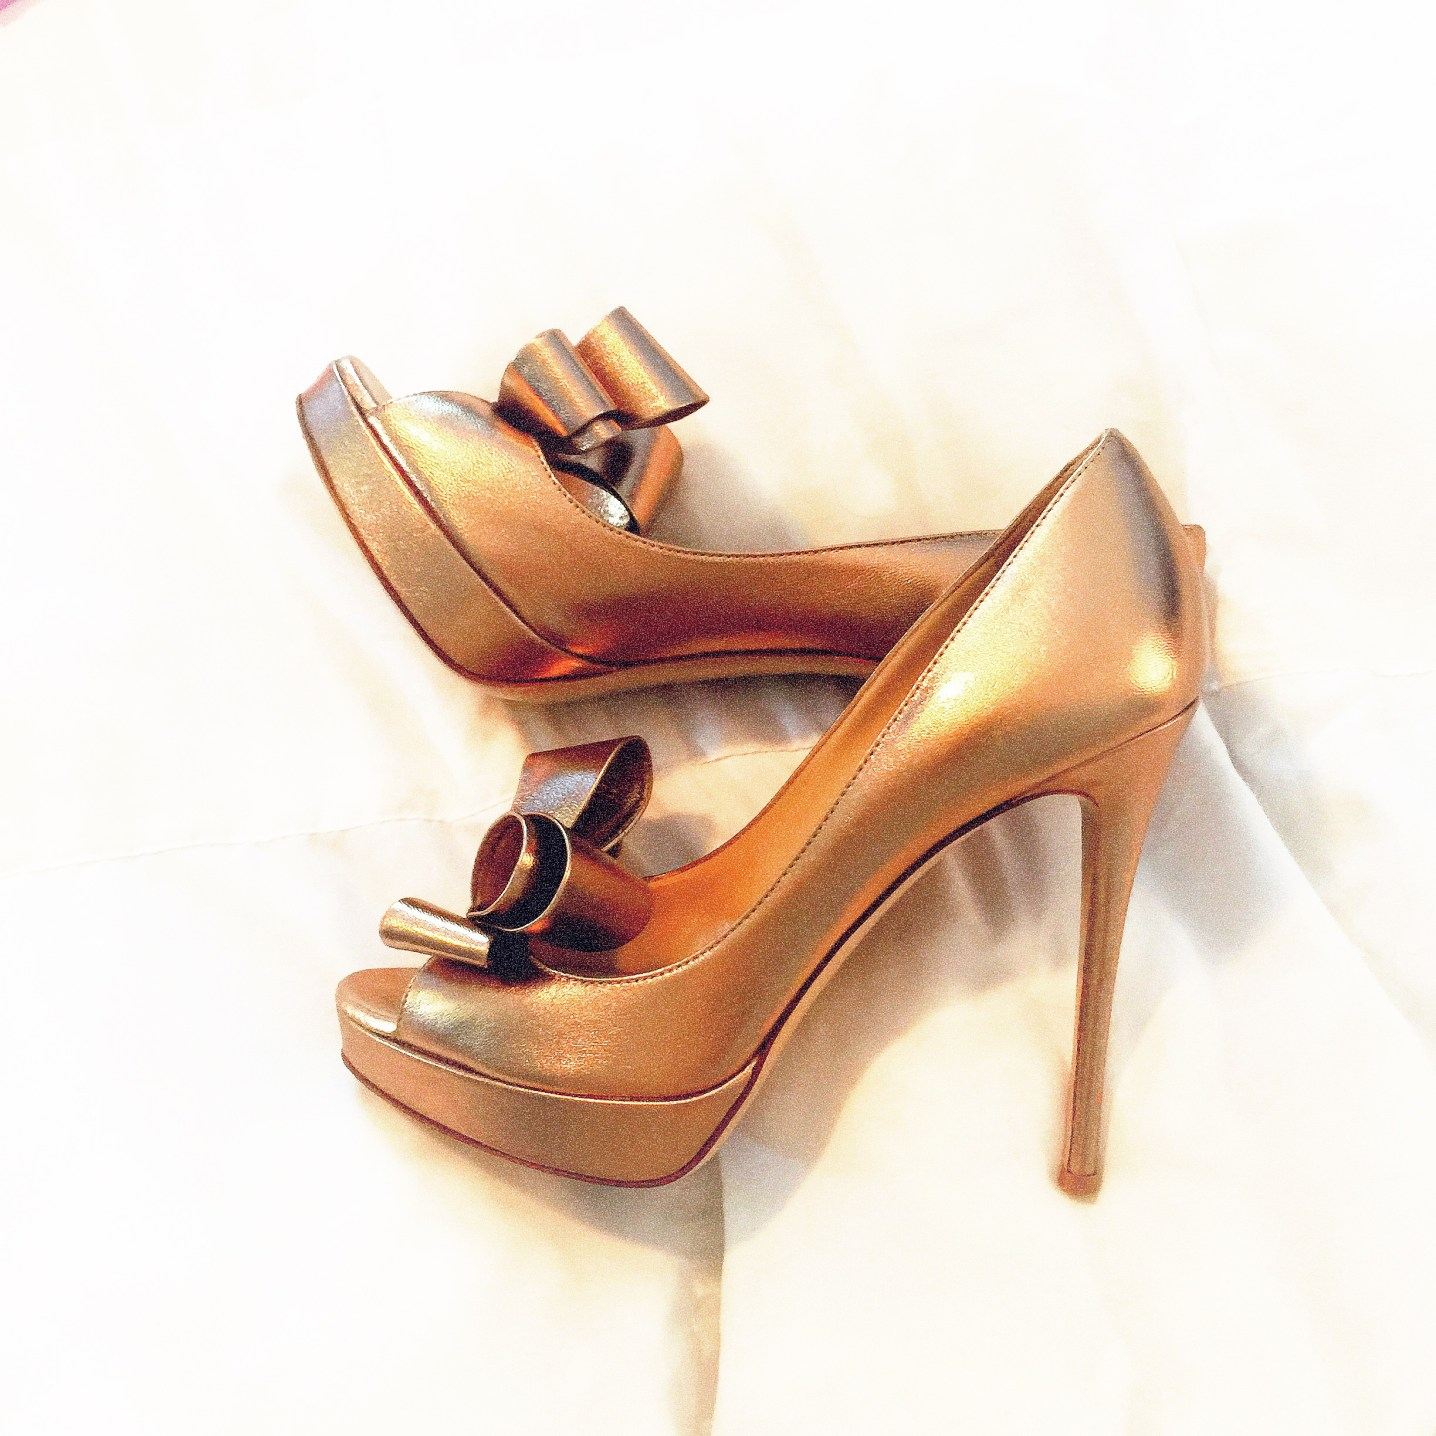 My gorgeous Valentino bow pumps that were a wedding gift from my husband (justifying the price tag of them)